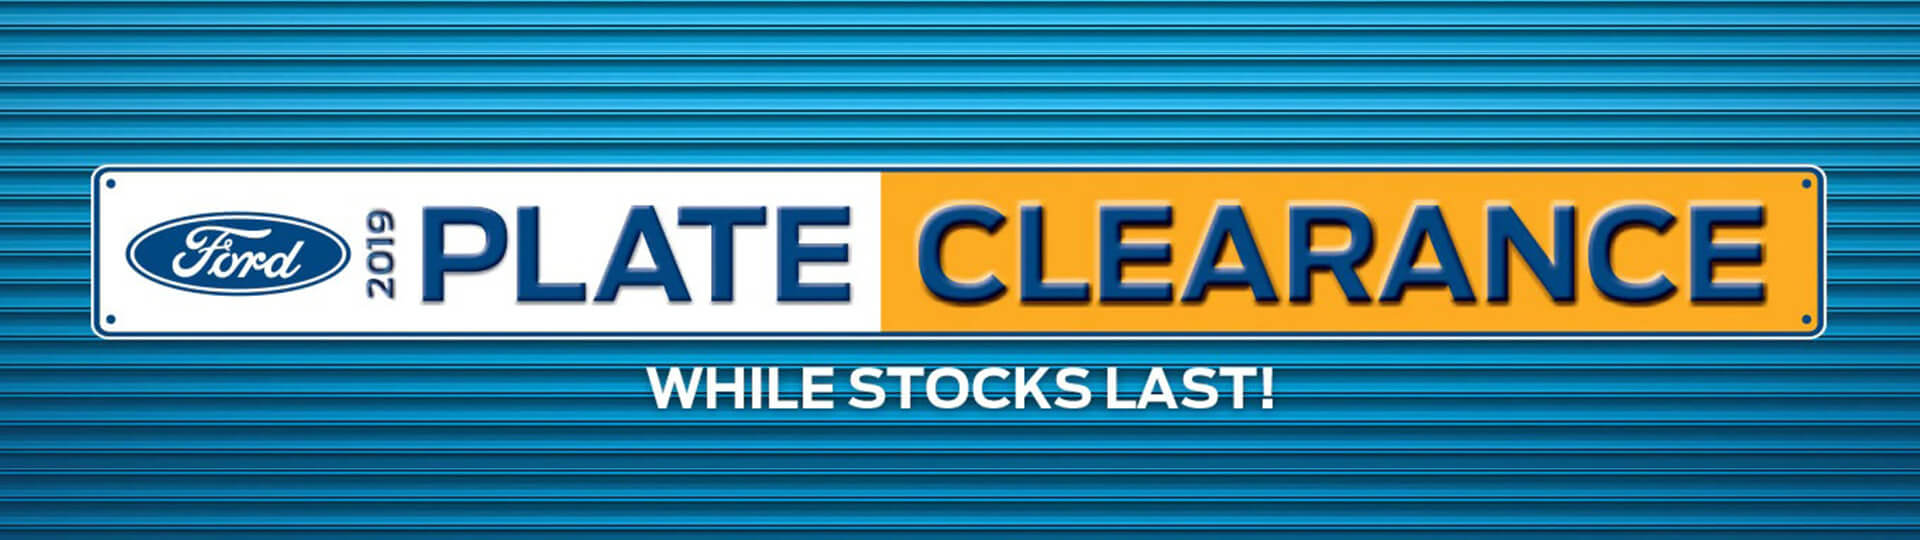 2019 Plate Clearance. While stocks last